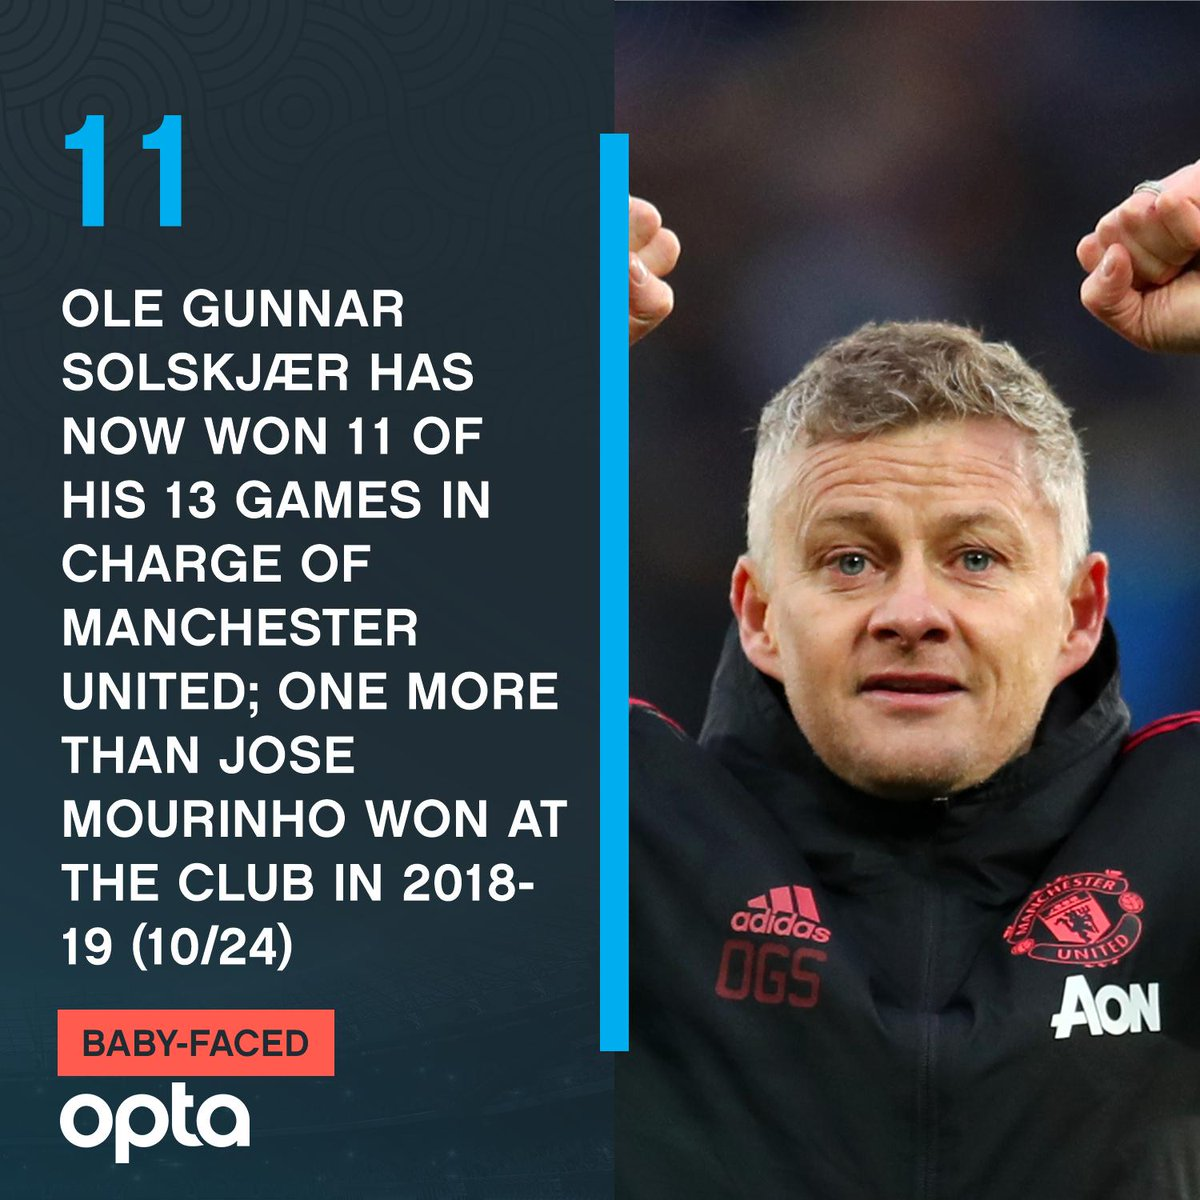 11 - Ole Gunnar Solskjaer has now won 11 of his 13 games in charge of Manchester United, one more than Jose Mourinho won with the club in 2018-19 (10/24). Phoenix.  #CHEMUN